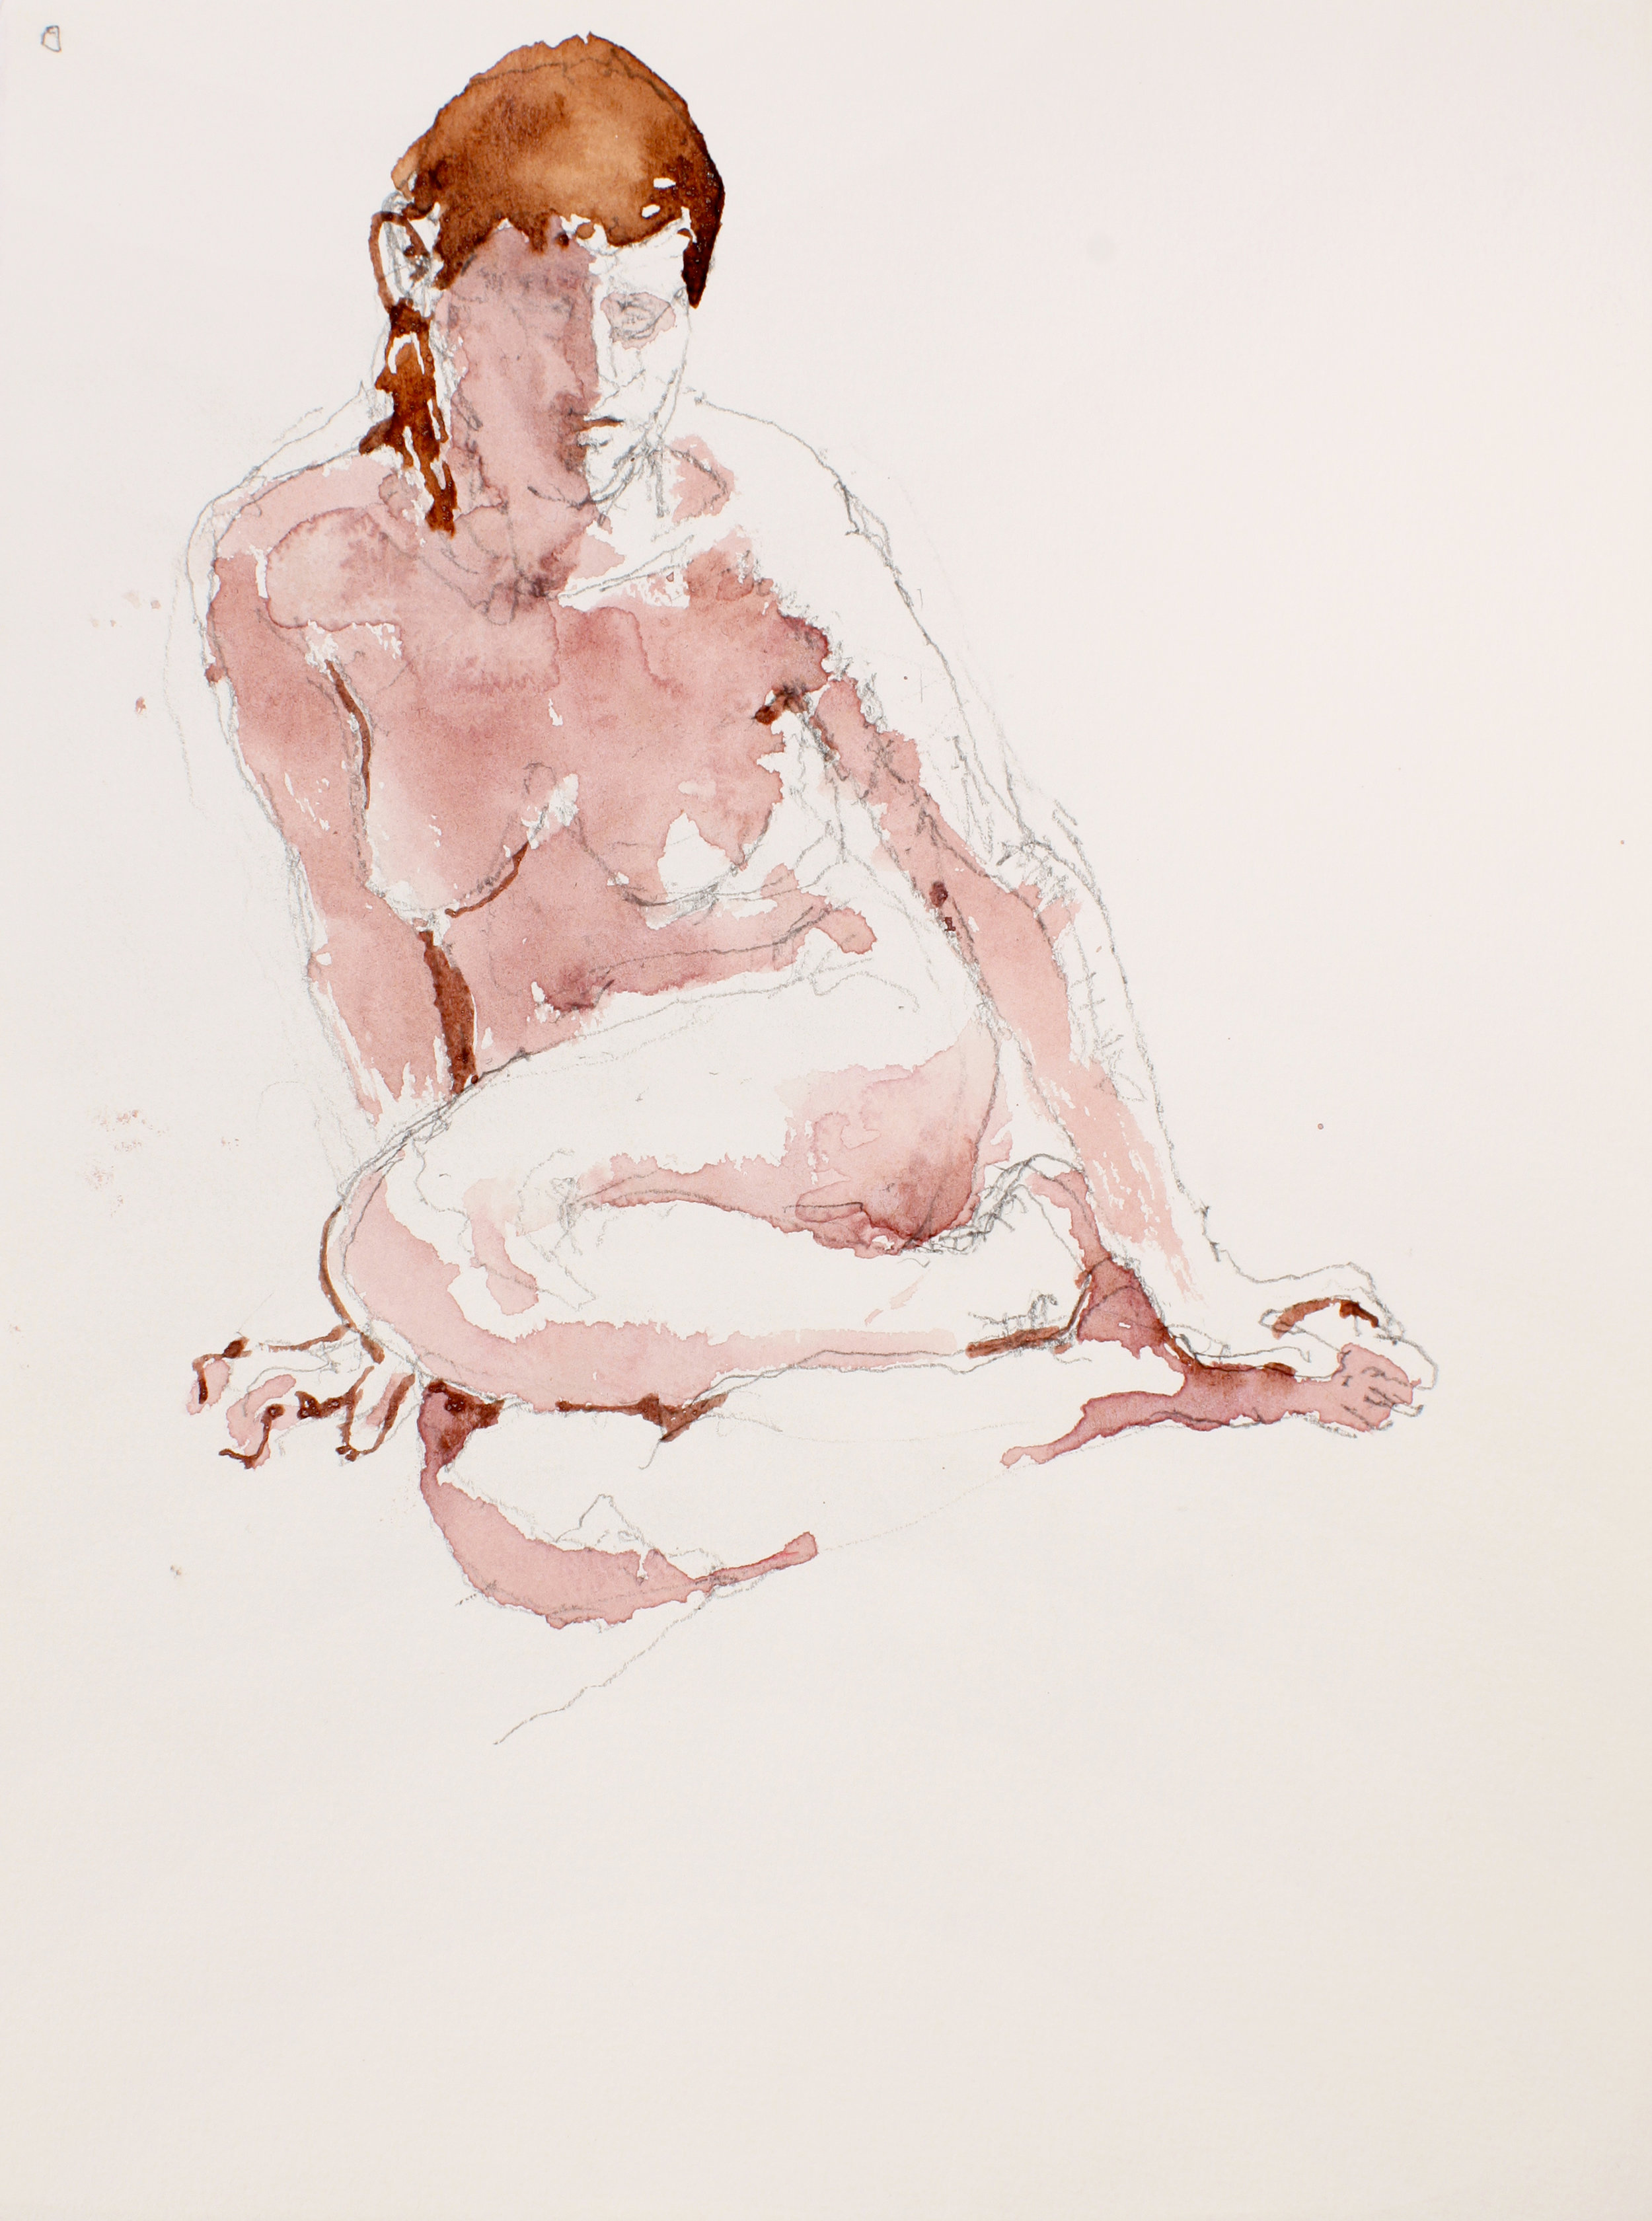 2007_Seated_Nude_with_Red_Hair_and_Tucked_Legs_watercolour_and_pencil_on_paper_15x11in_WPF511.jpg